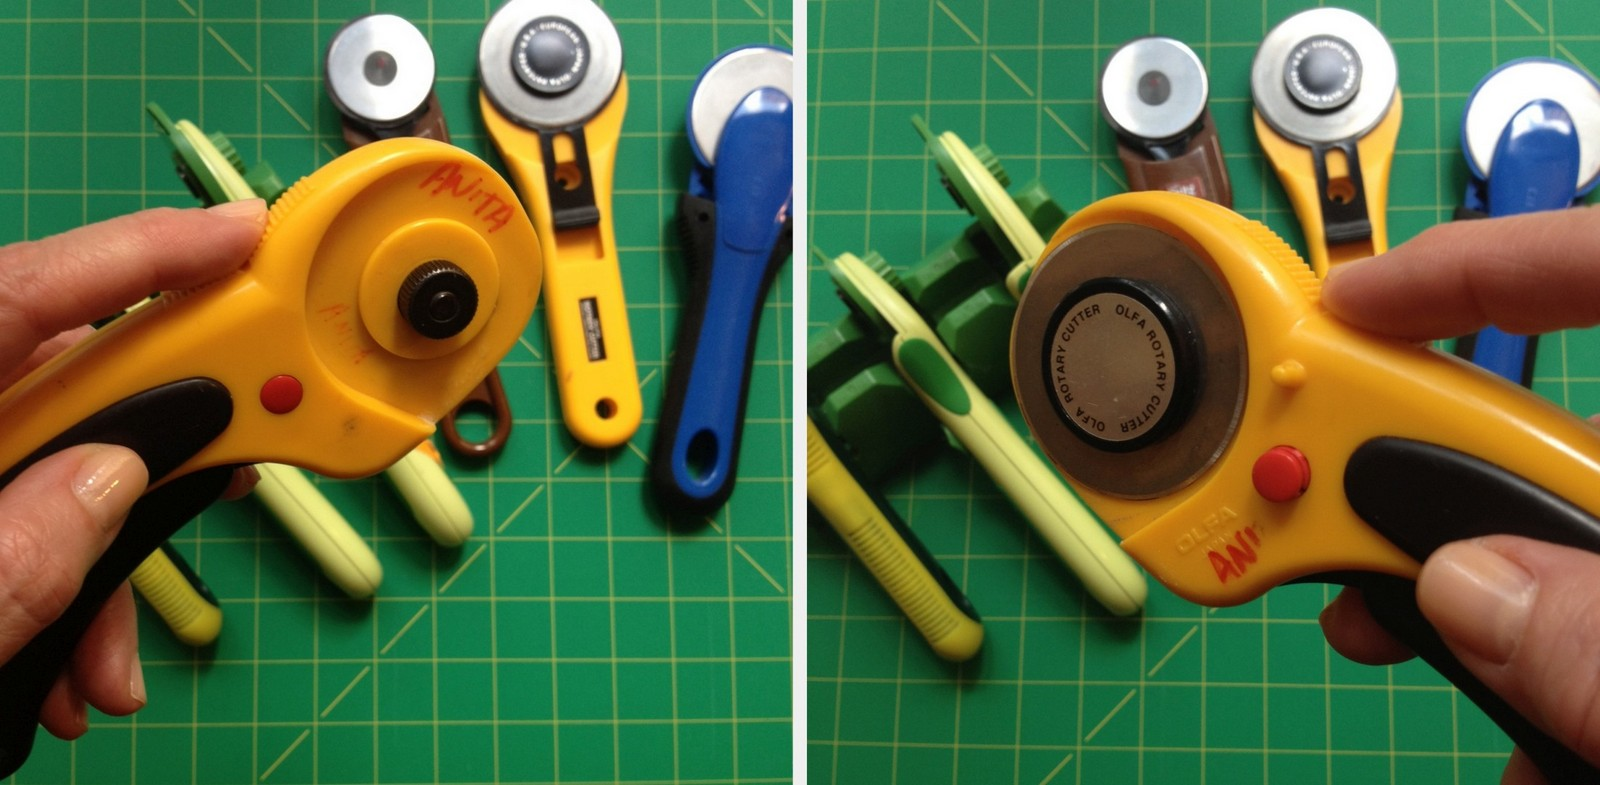 Rotary Cutter for the Right Hand, Back and Front